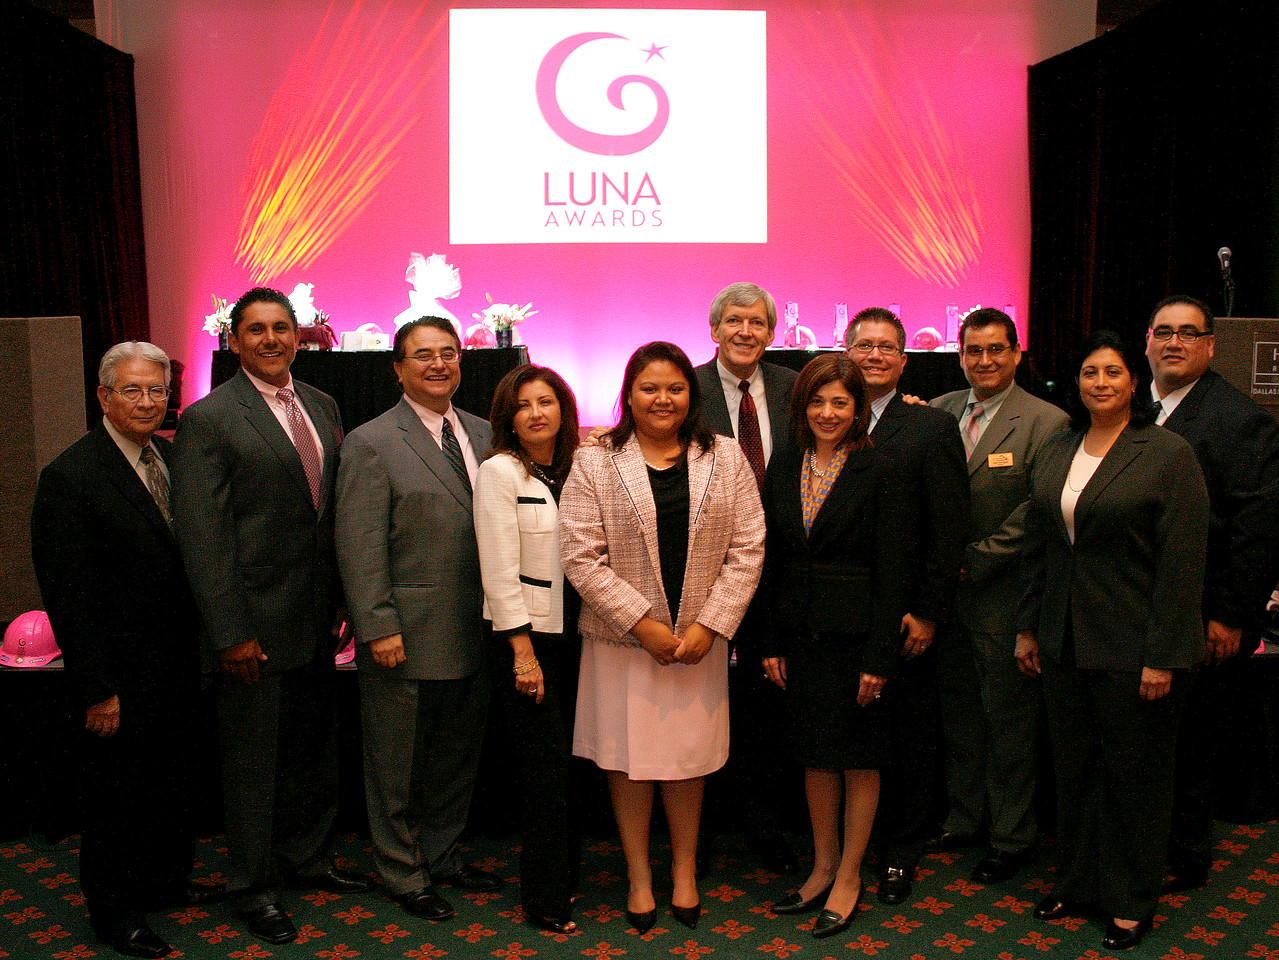 HCADFW Board Members; Hank Lopez; Javier Huerta; Chris Escobedo, Chairman; Deputy Mayor Pro Tem Dr. Elba Garcia; Mayor Tom Leppert; JP Morgan Chase Executive Vice-President Alice Rodriguez; HCADFW Board Members John Leos; Jose Rodriguez; Brenda Reyes; and HCADFW President Mr. John H. Martinez-D.